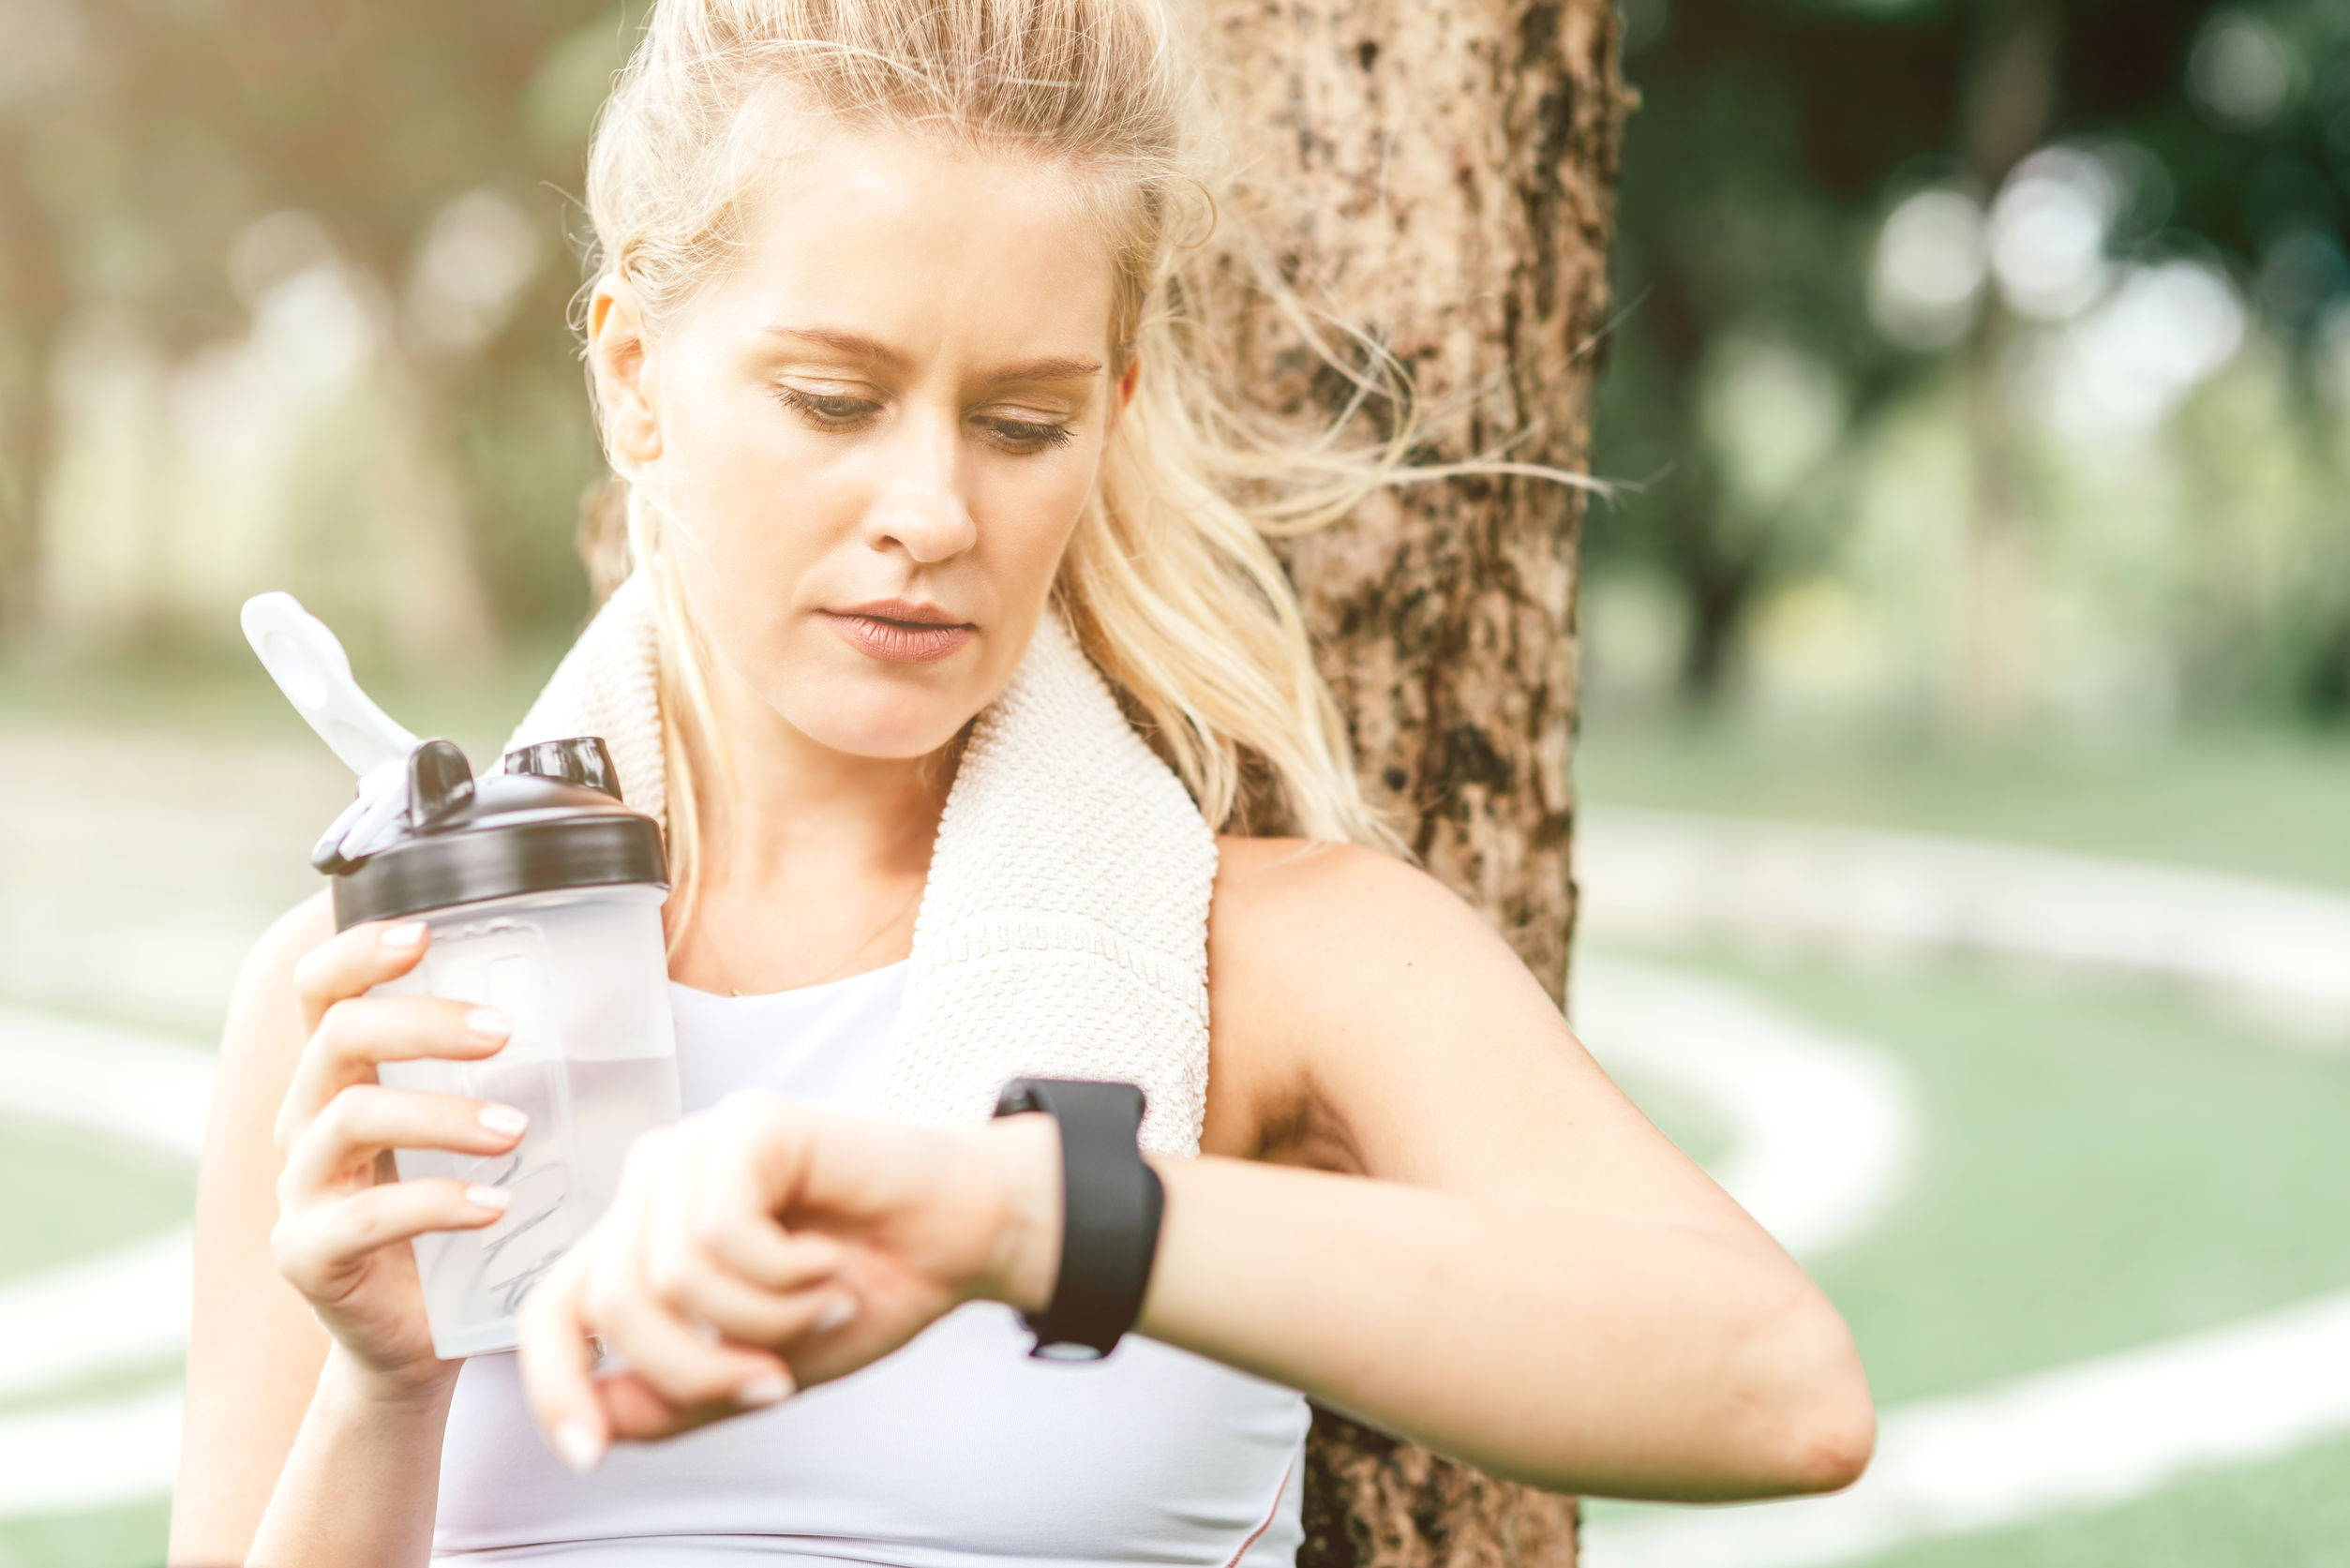 A woman checks her watch as she drinks her pre-workout drink.